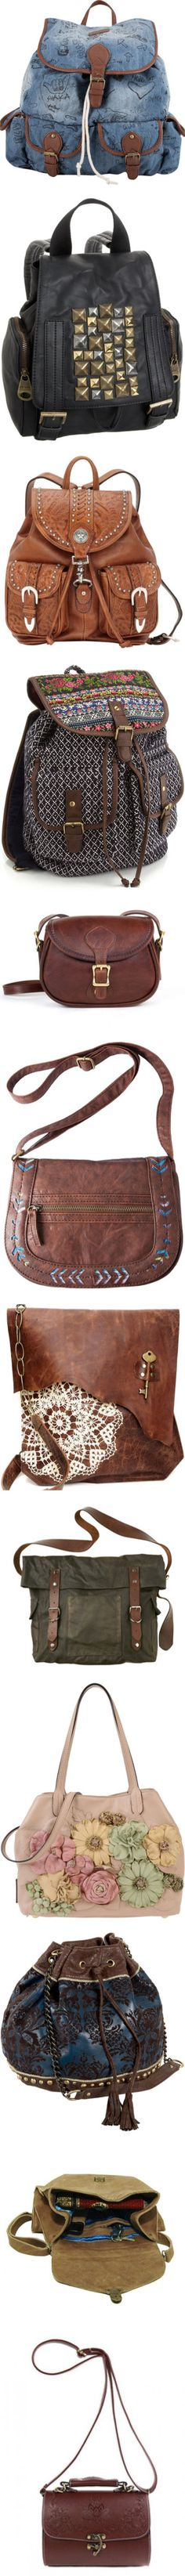 """bags 2"" by tanja-bp ❤ liked on Polyvore"